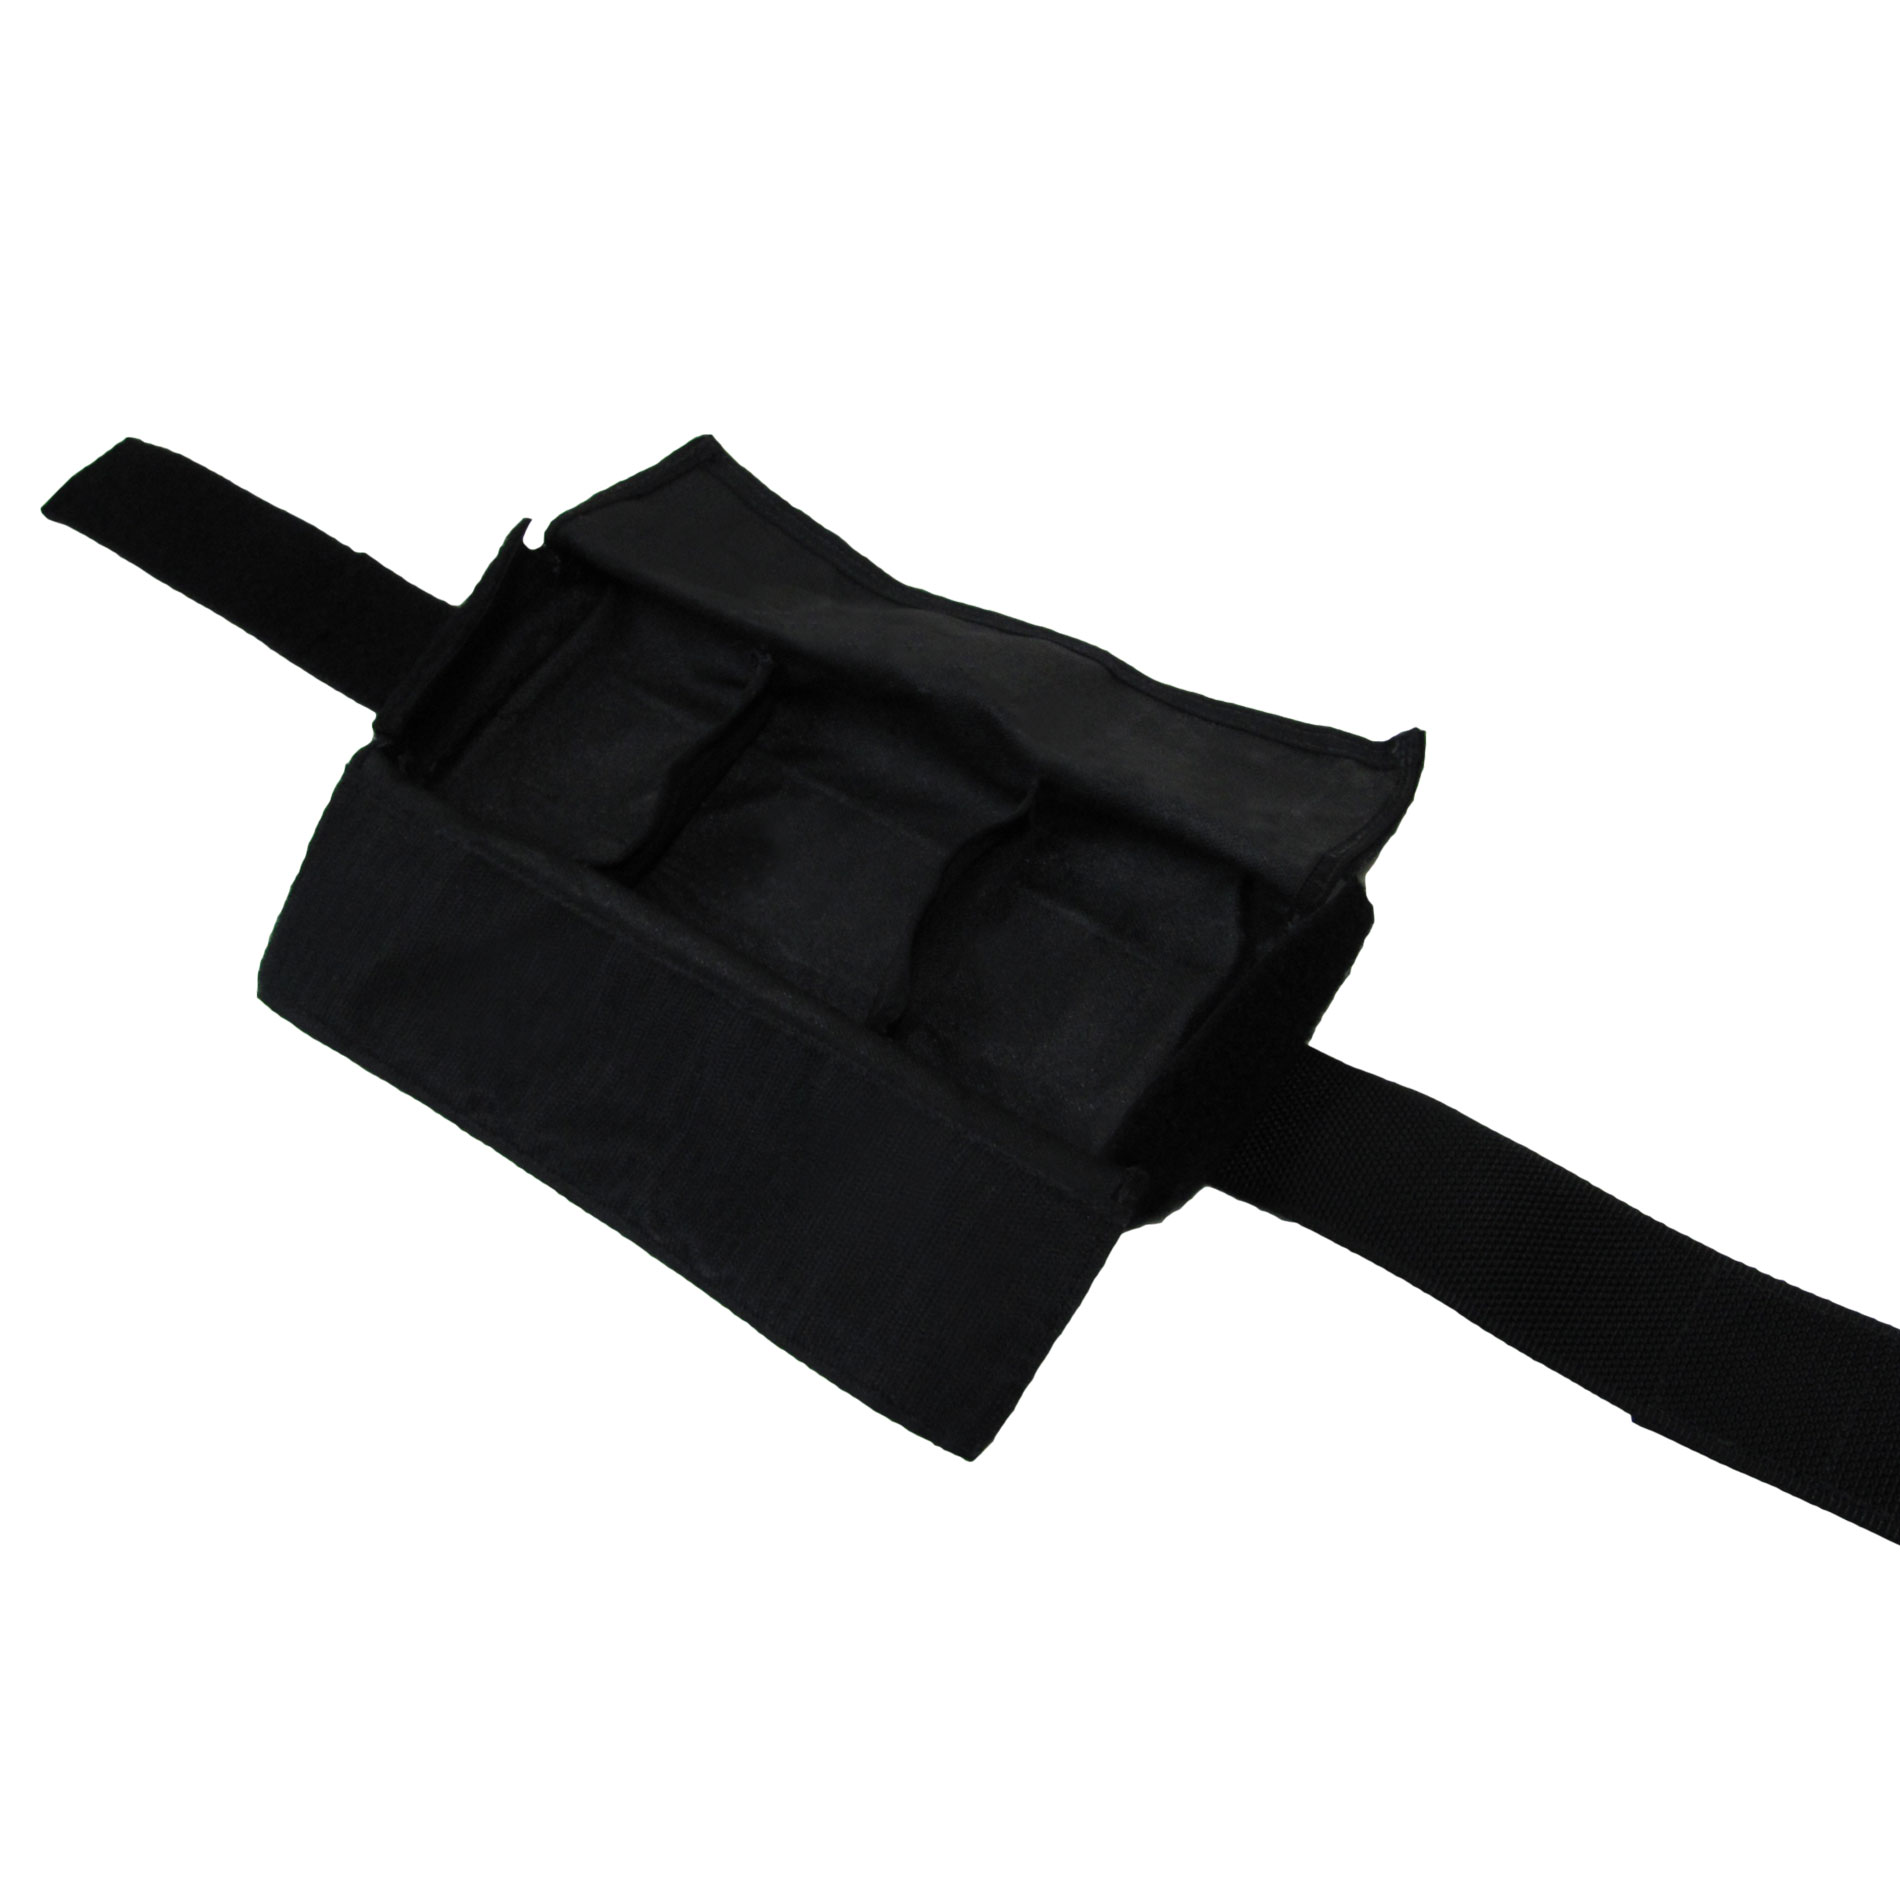 Zero Gravity™ Weight Pouch